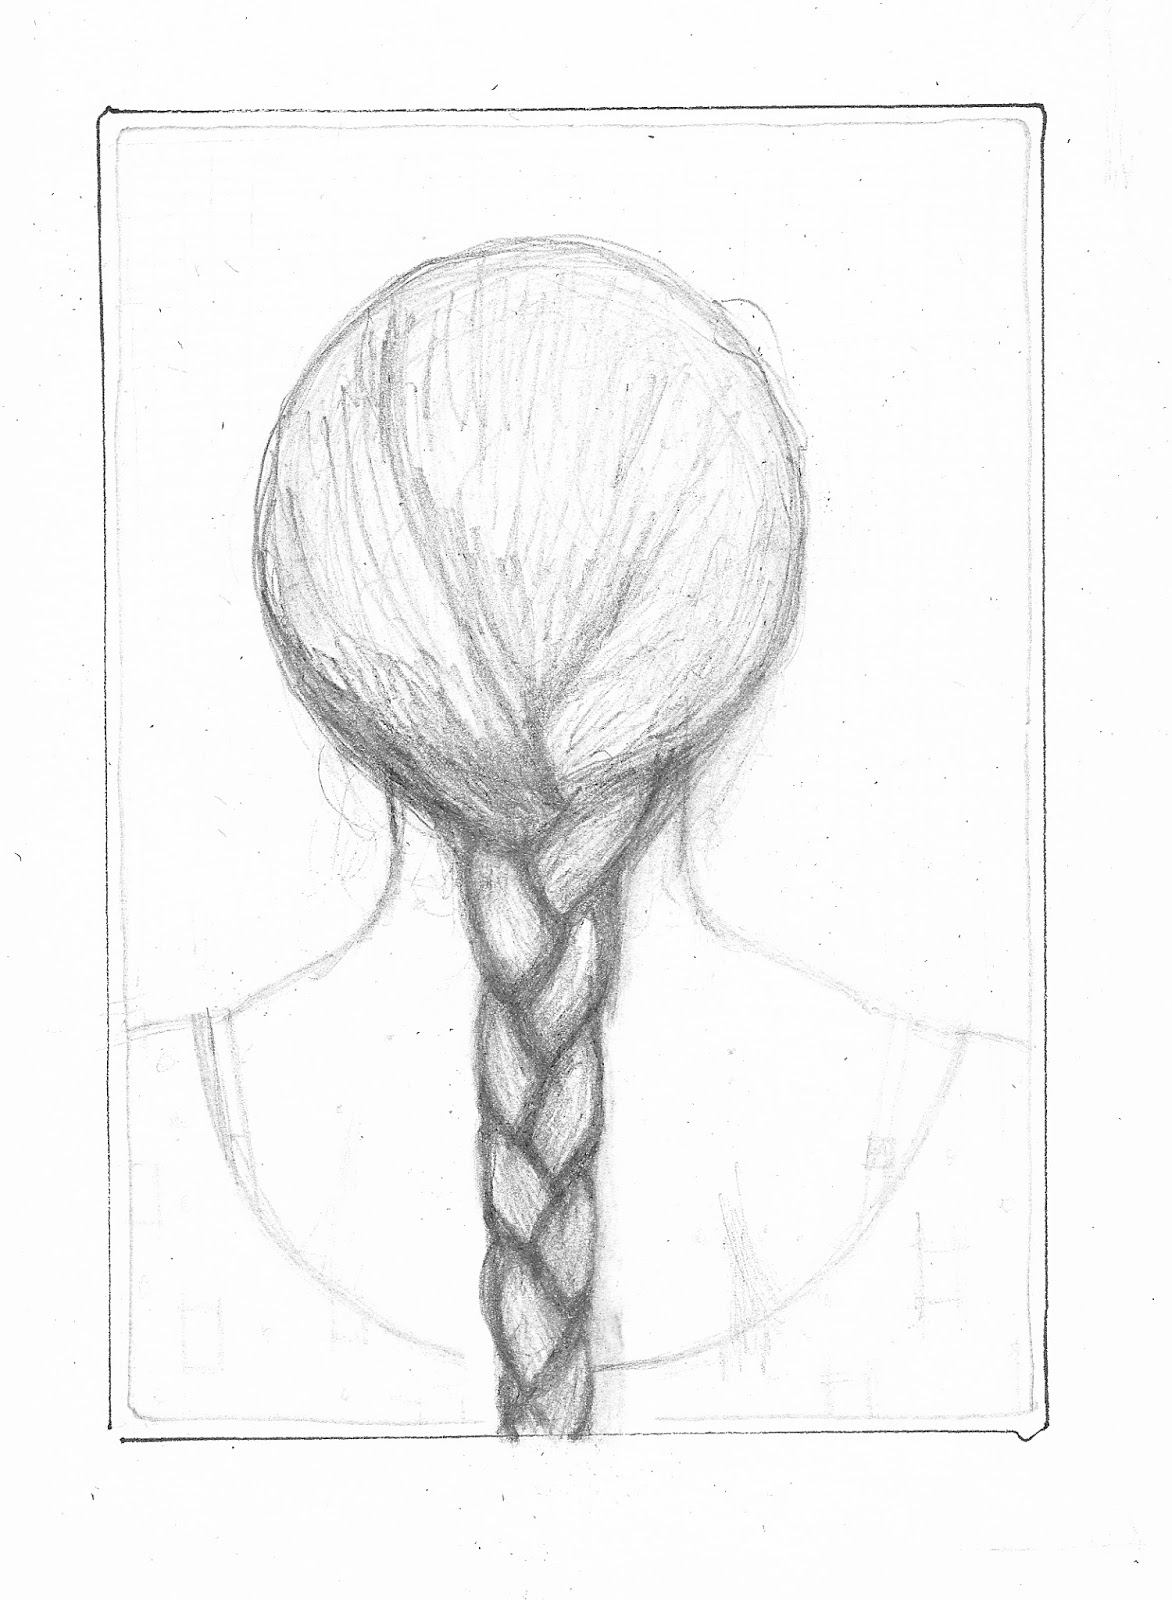 Drawn braid simple This scale A4 from paper